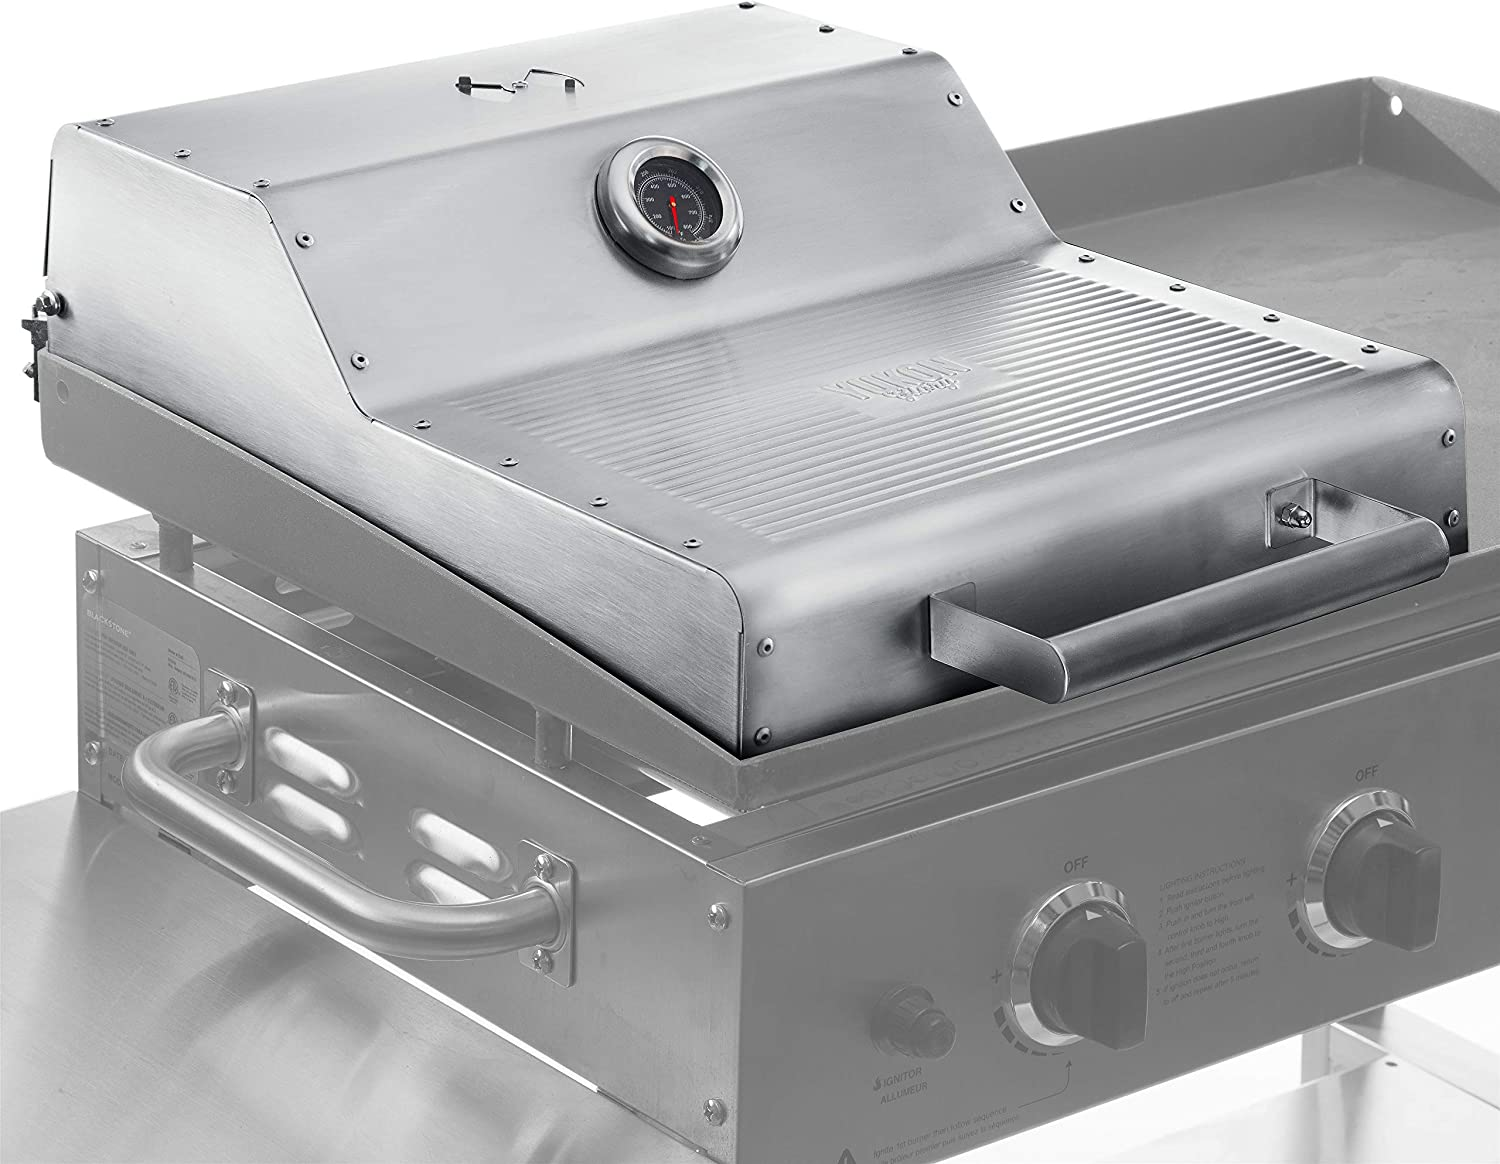 "Yukon Glory Griddle Hood, Designed to be Compatible with The Blackstone 36"" Griddle, Adds All-Round Convection Cooking to Your Griddle, Built-in Thermometer and Warming Rack (Not for Pro-Series)"